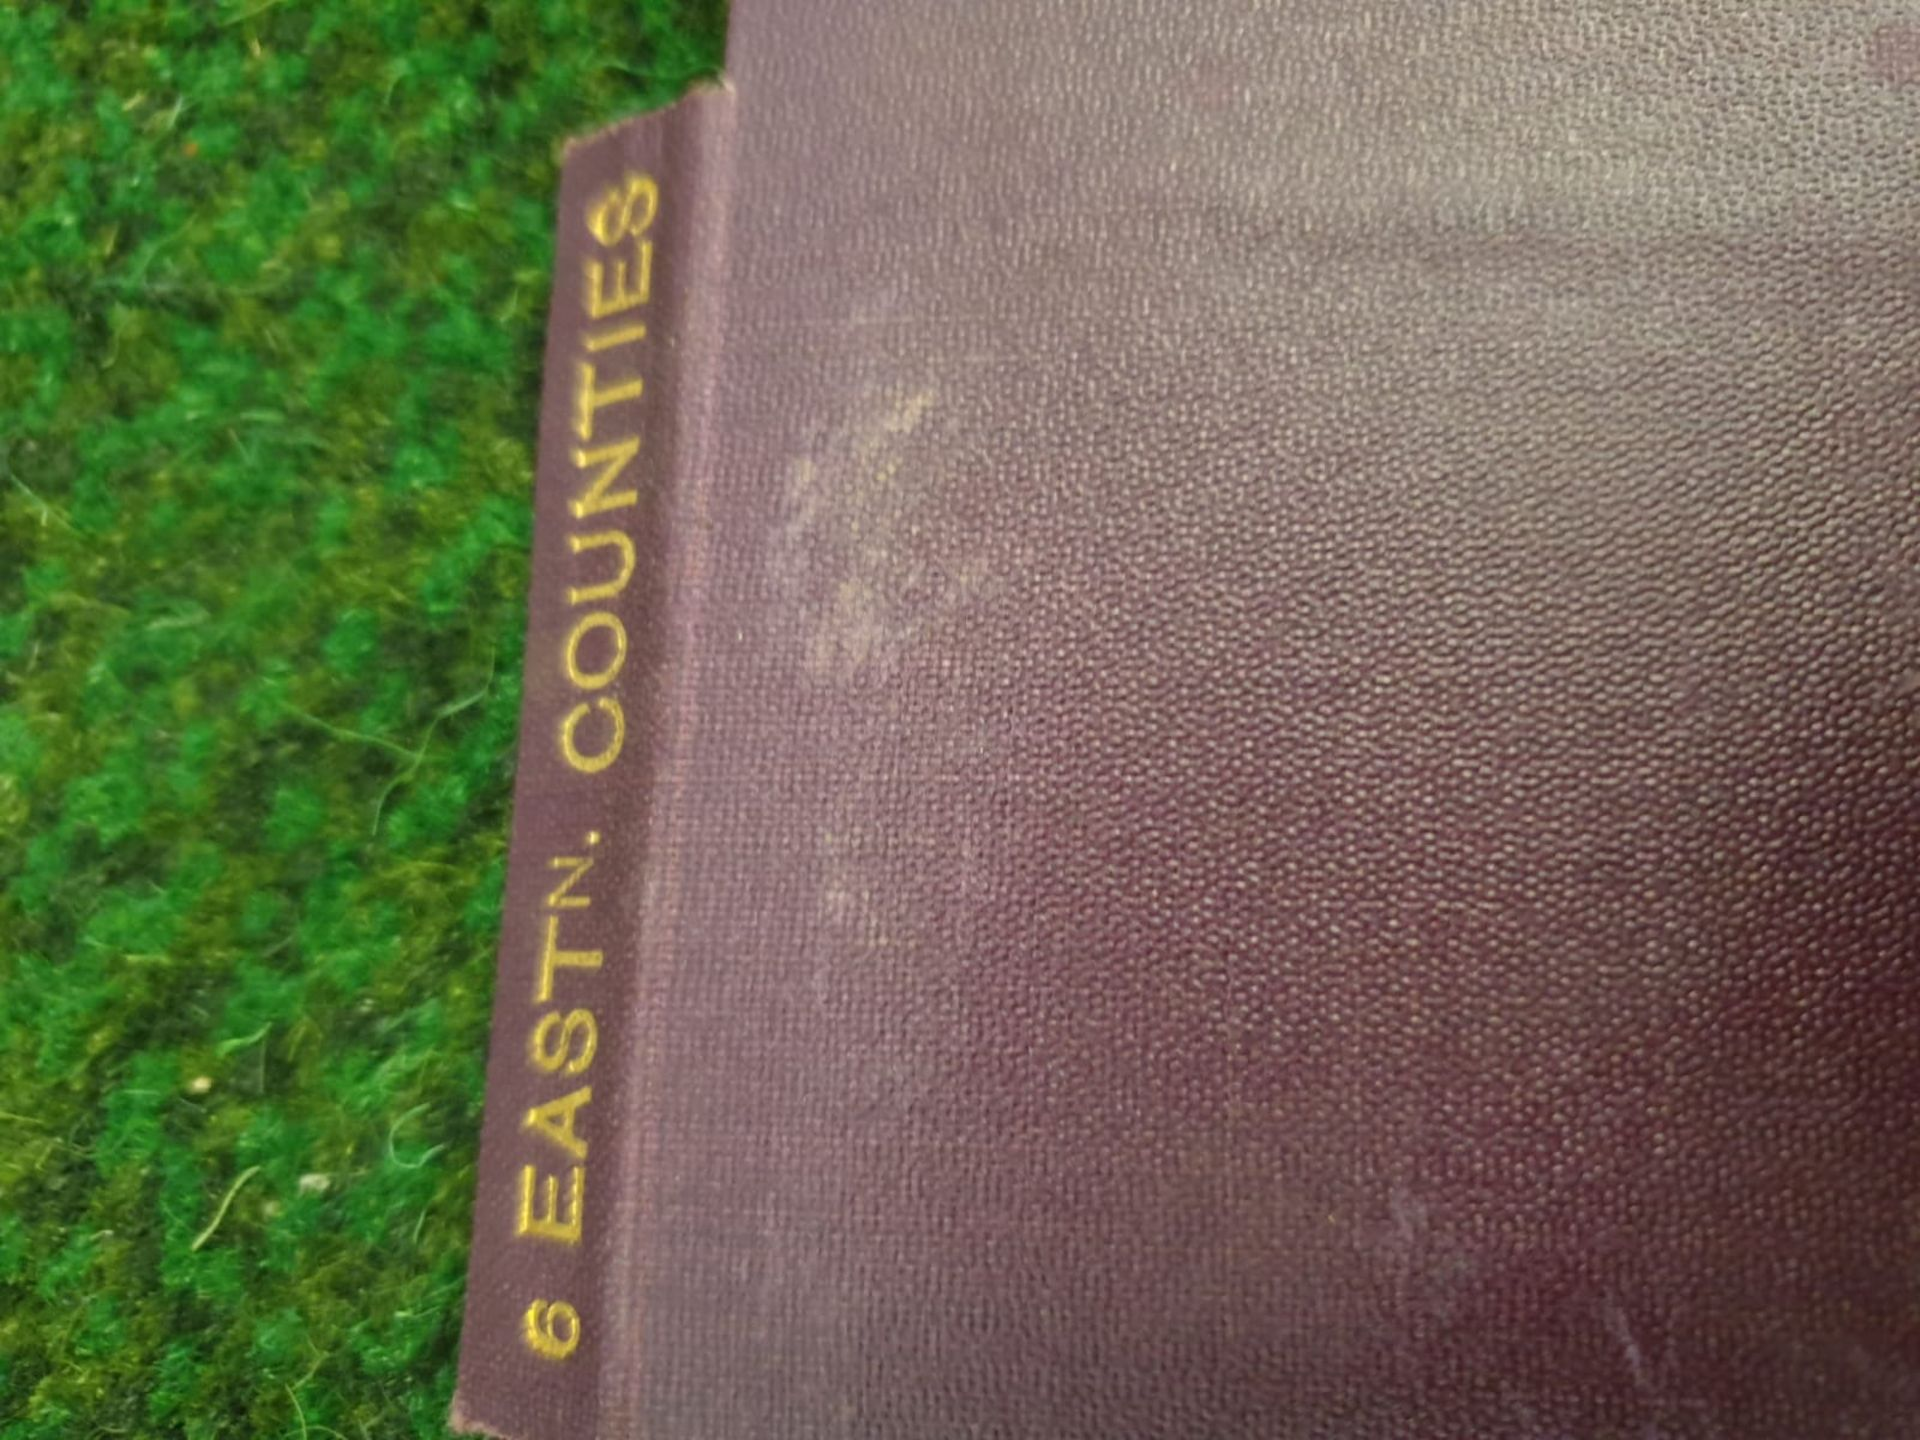 A set of 8 G.W. Bacon & Co VintageLarge Print Road maps in leather slipcase Circa. 1910 - Image 2 of 12